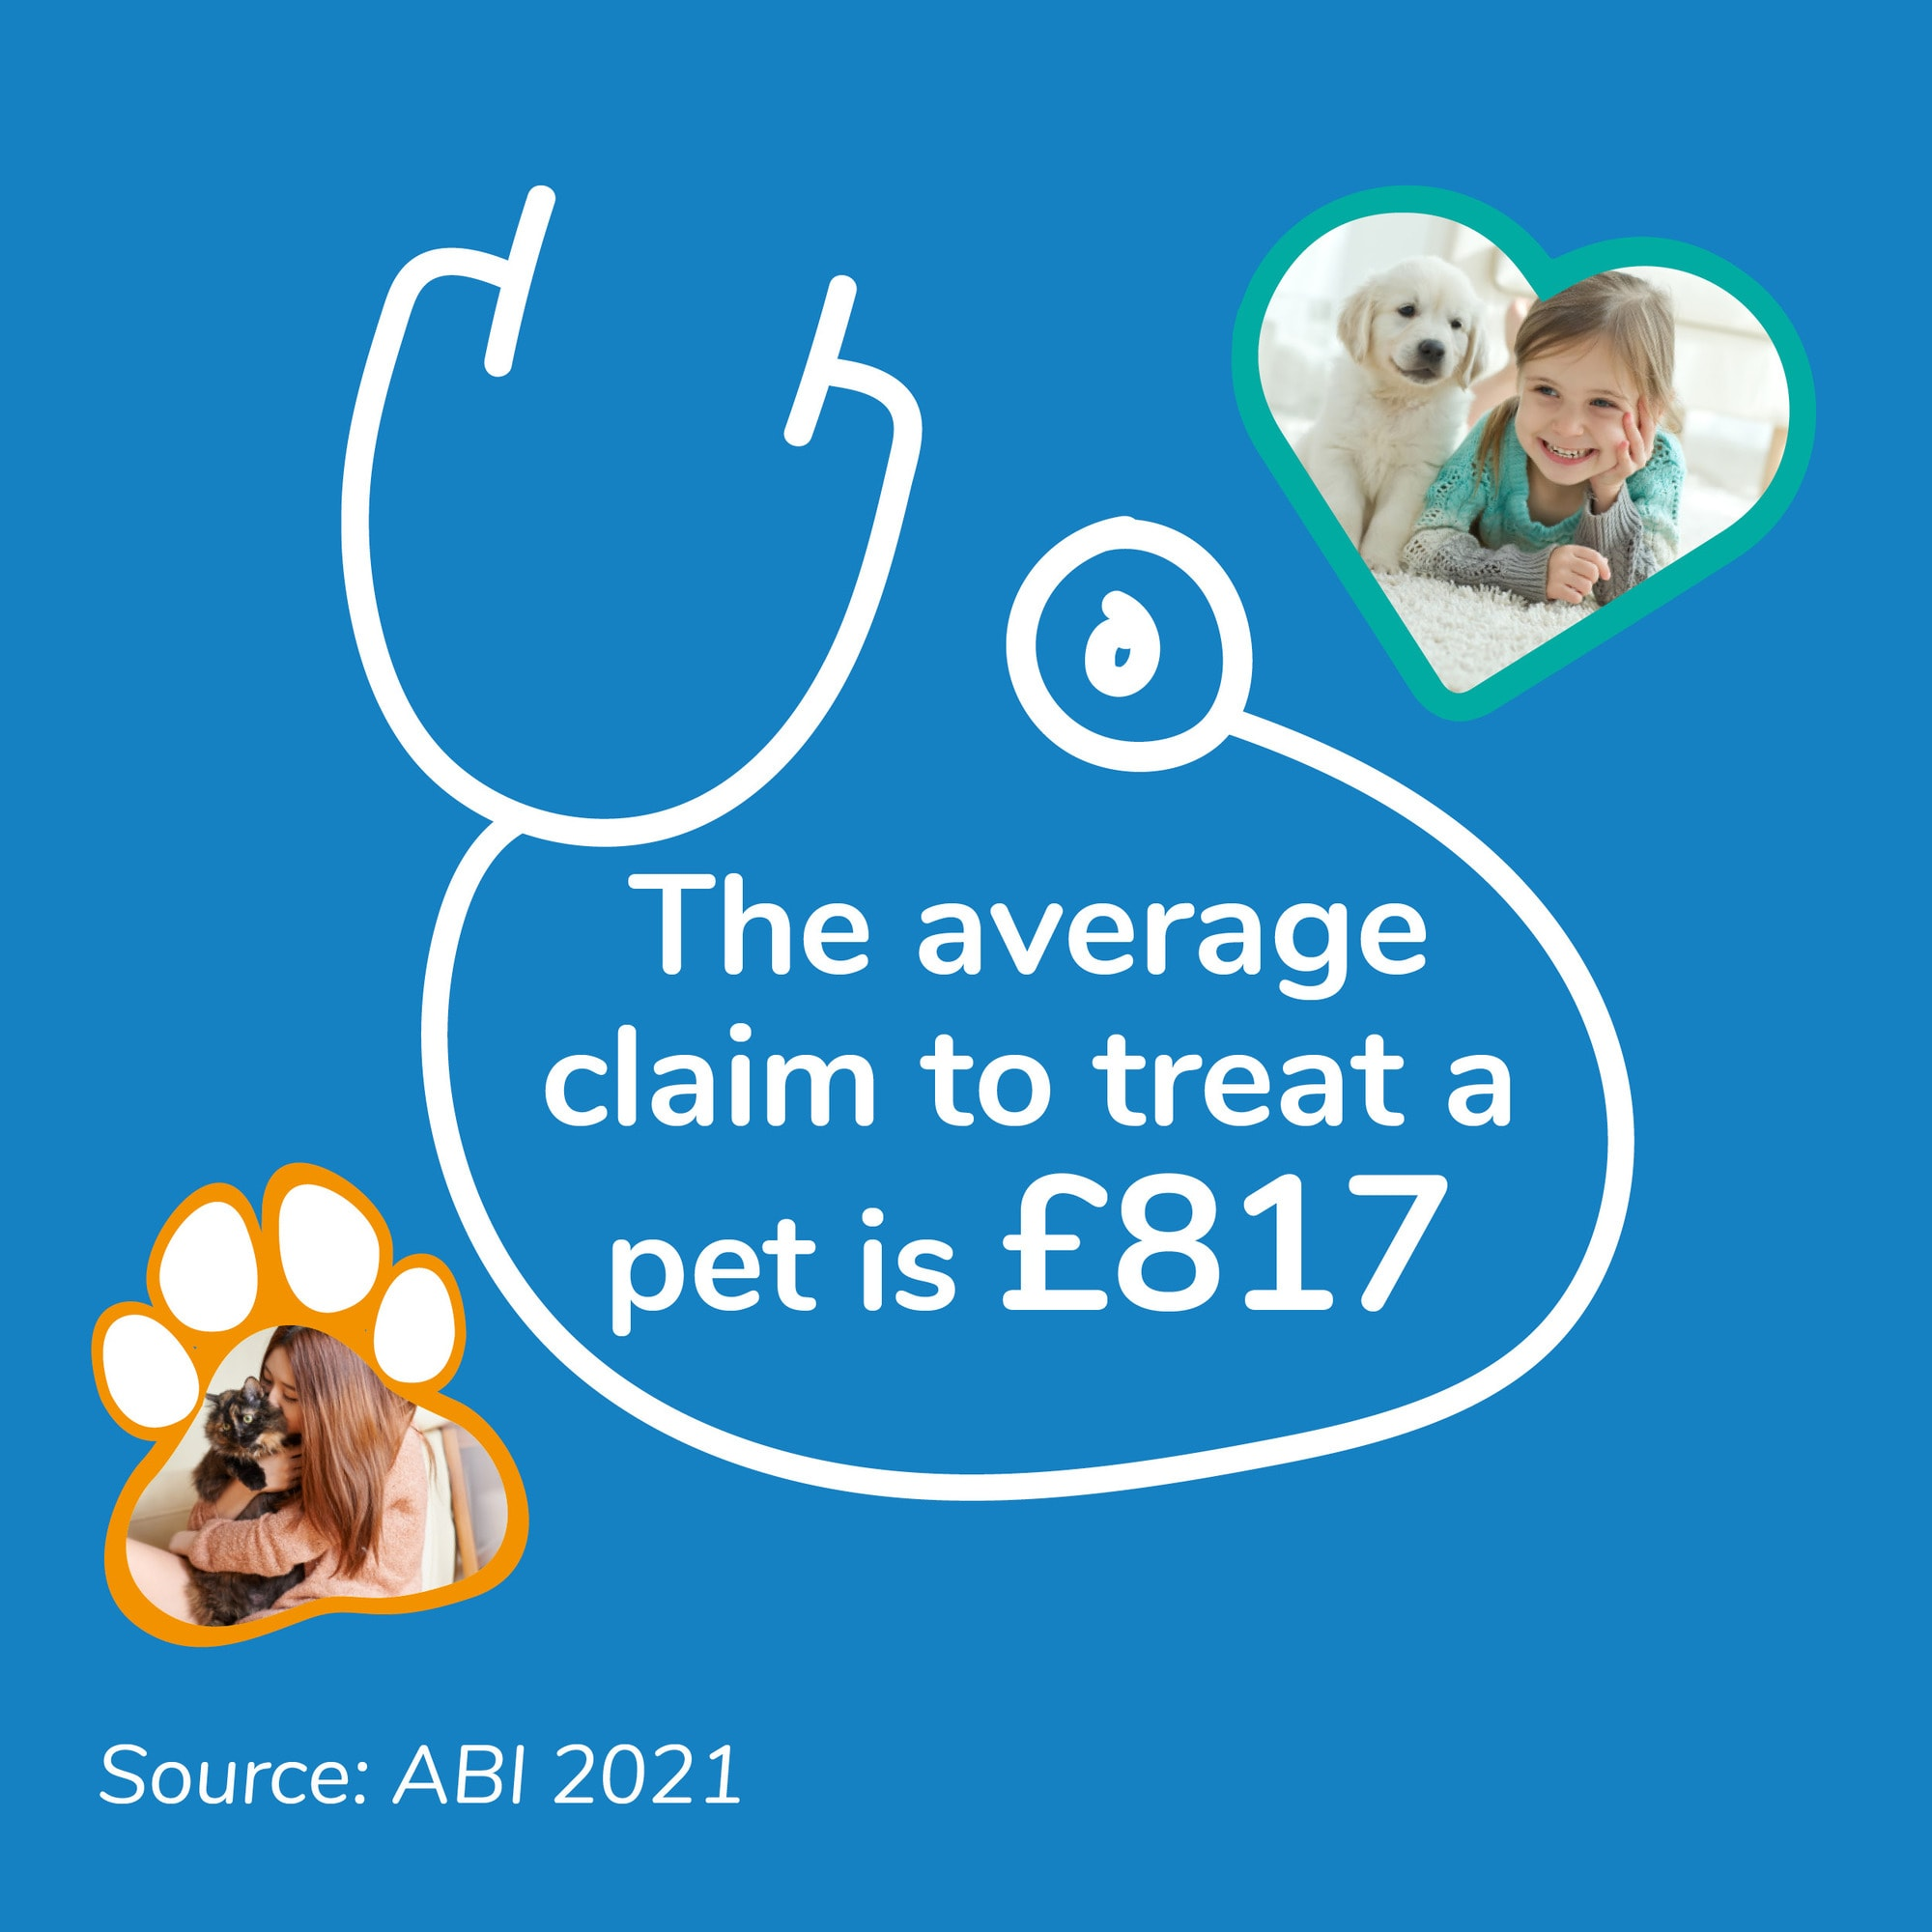 The average pet insurance claim during 2020 was £817